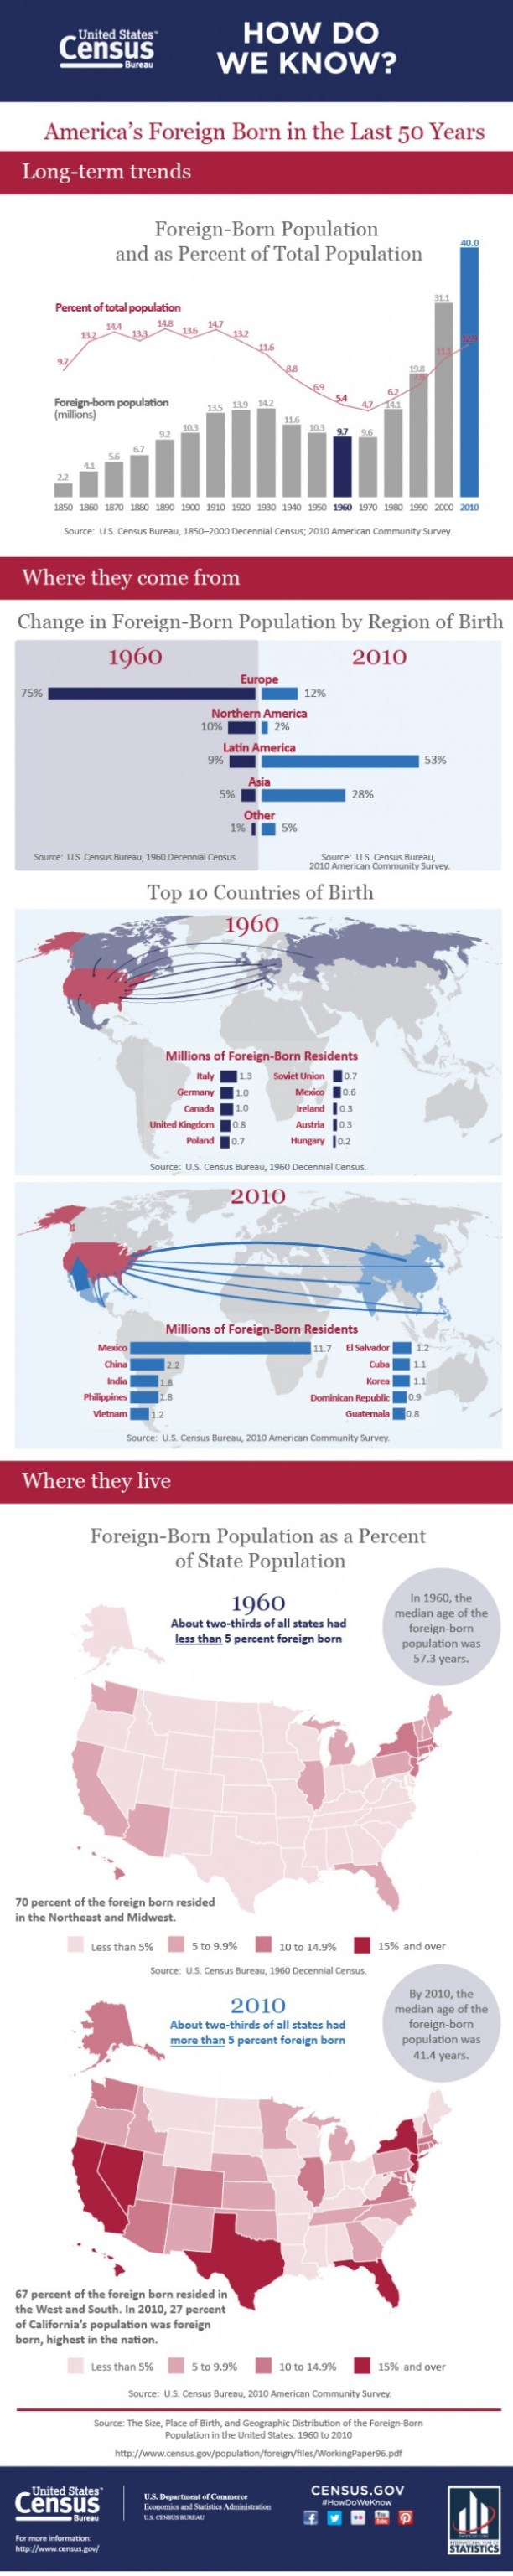 census_infographic_edited